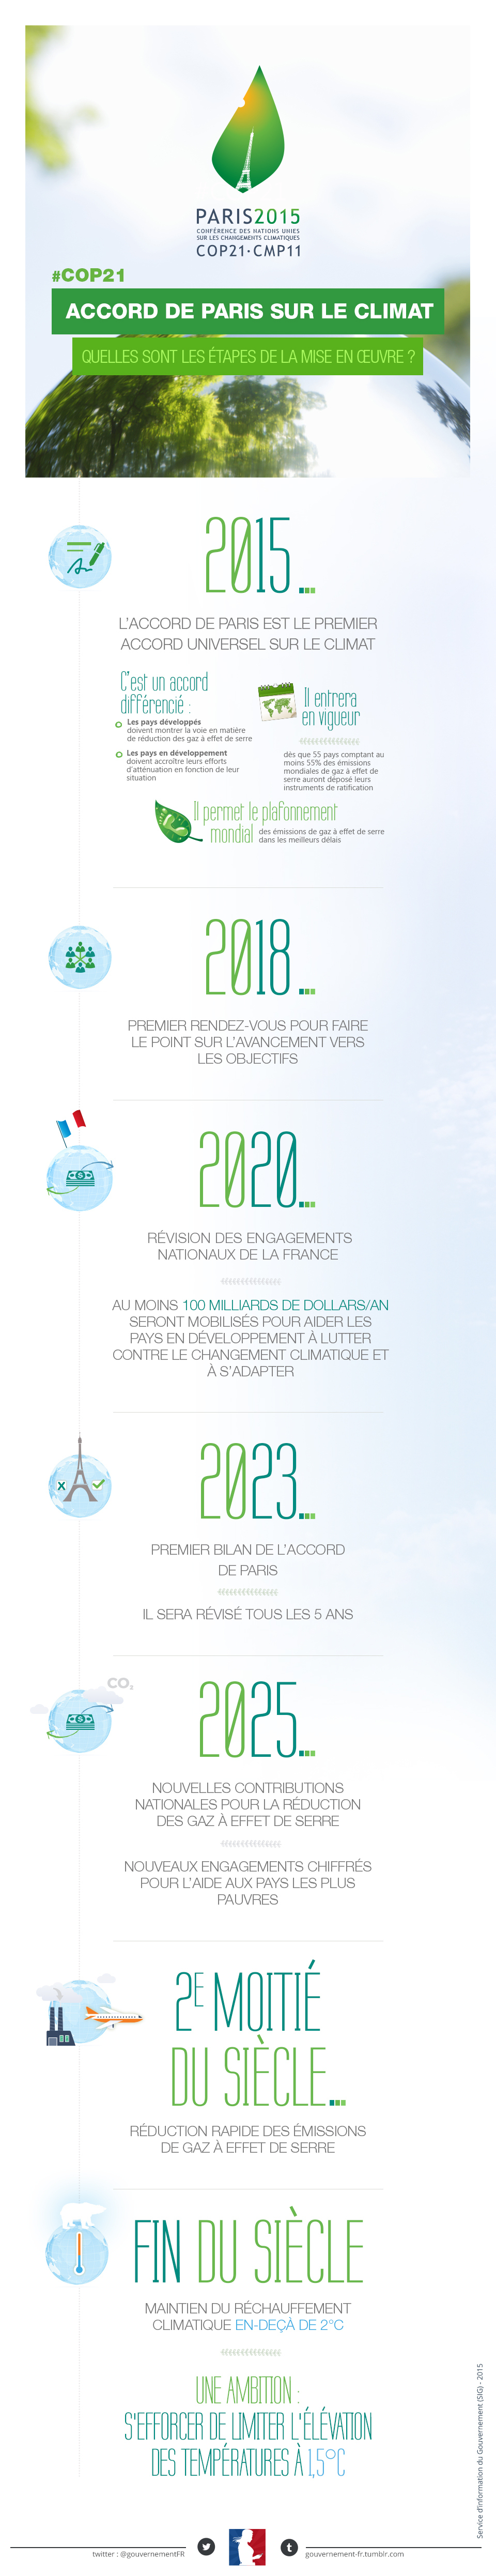 Infographie sur l'Accord de Paris - voir en plus grand